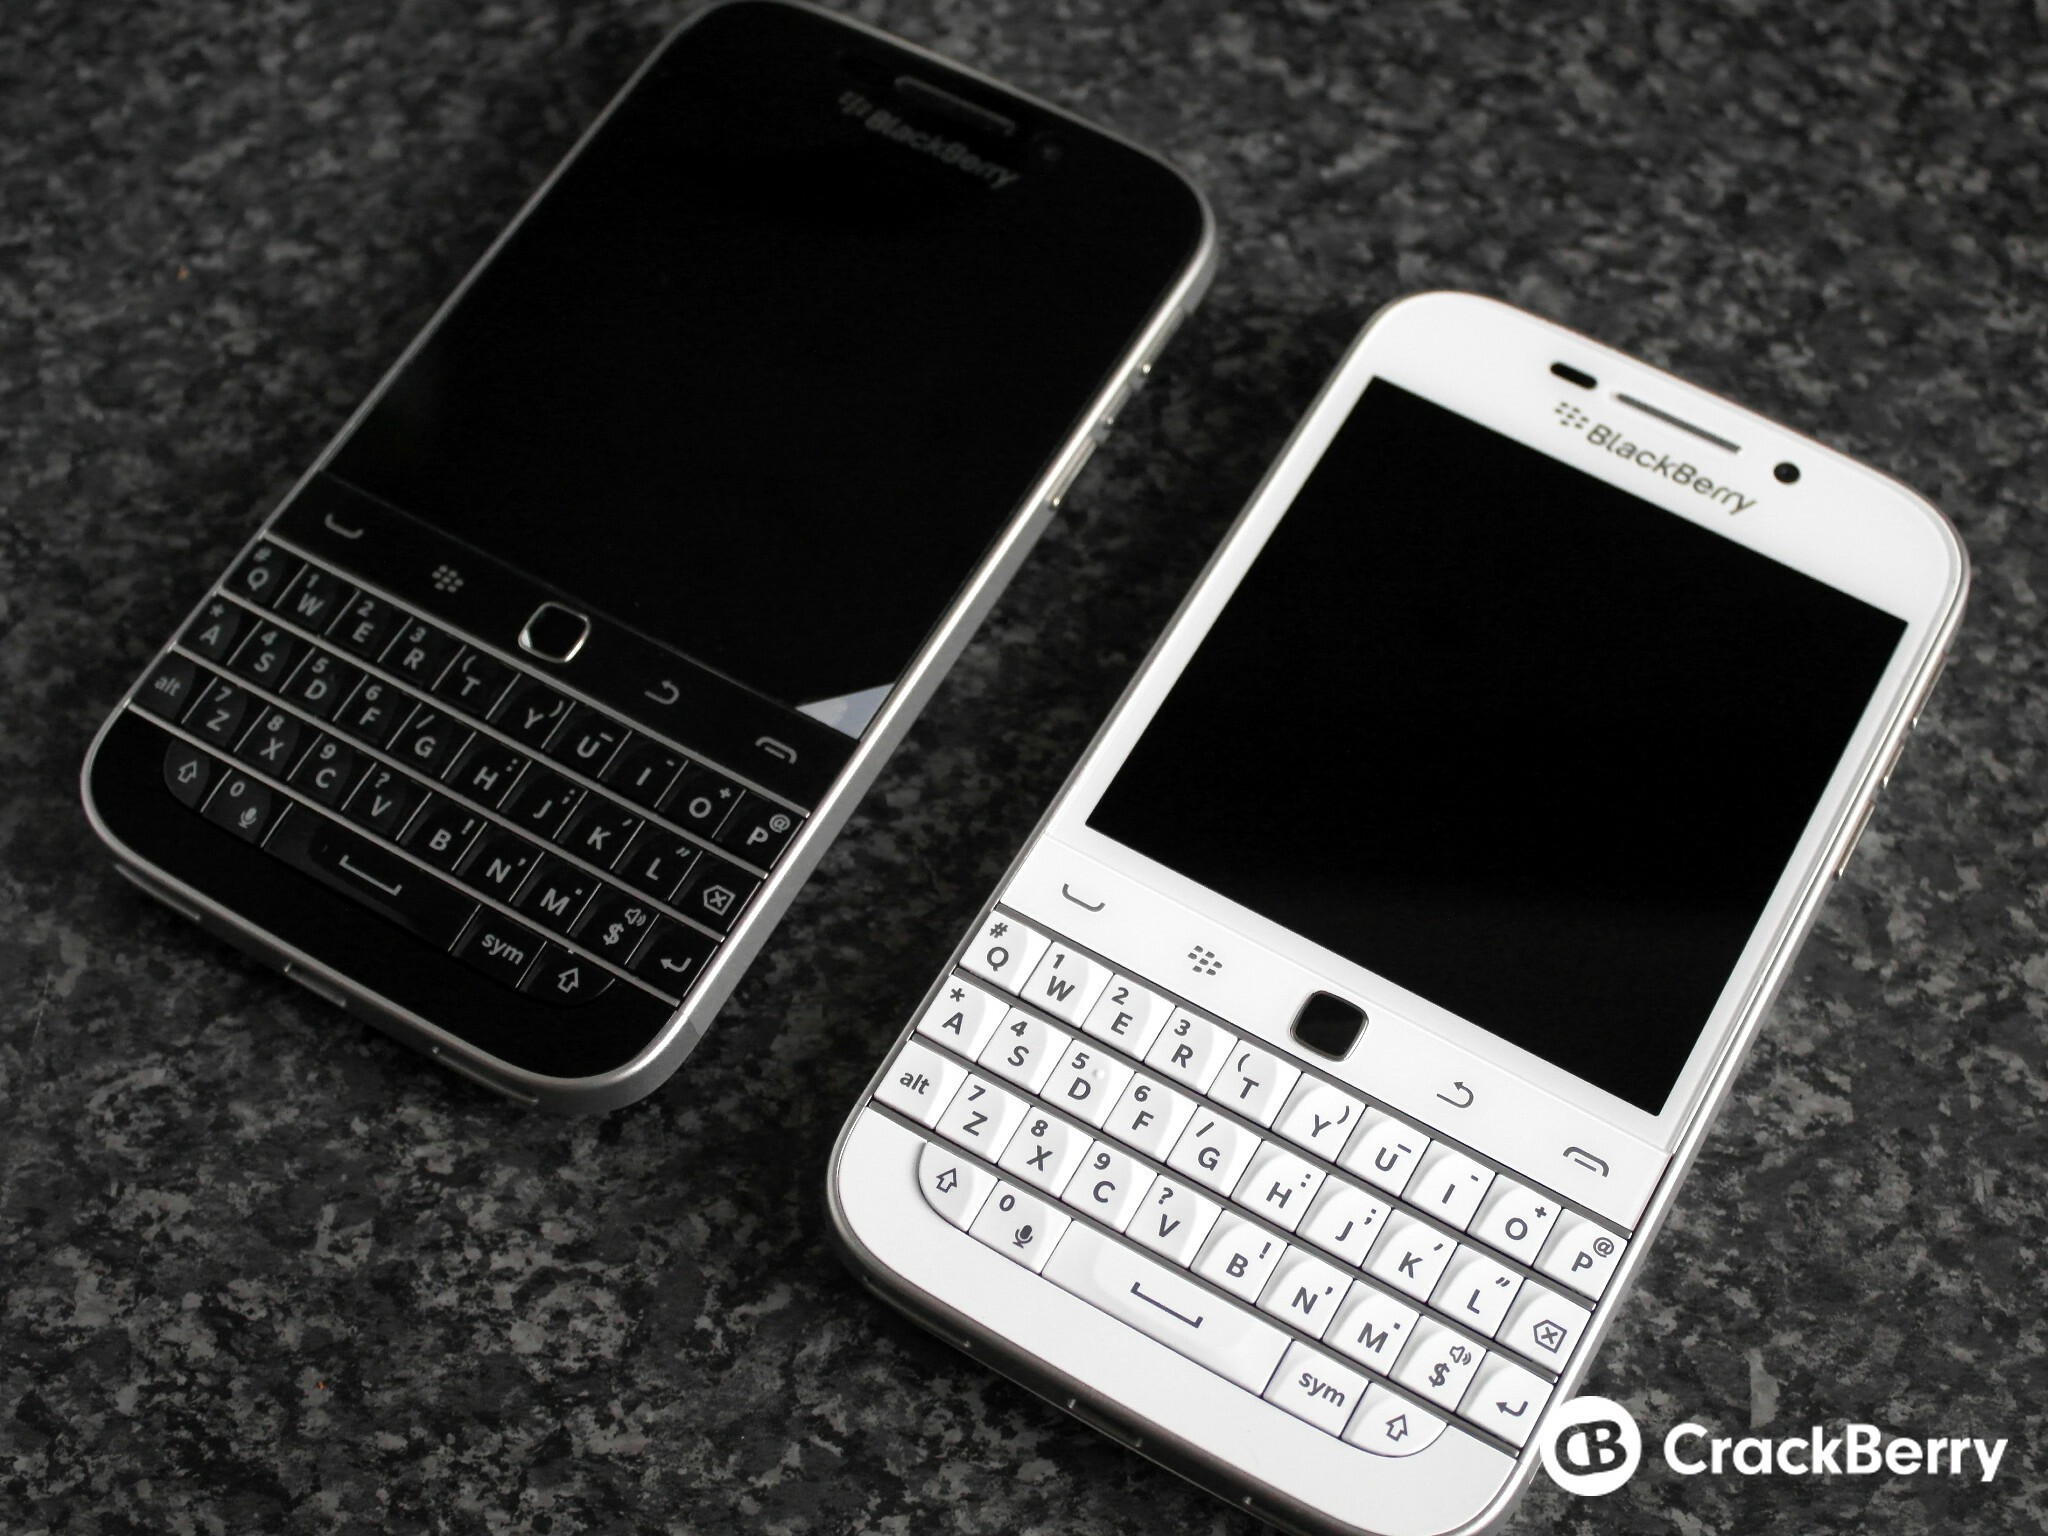 BlackBerry Classic White and Black side by side front view